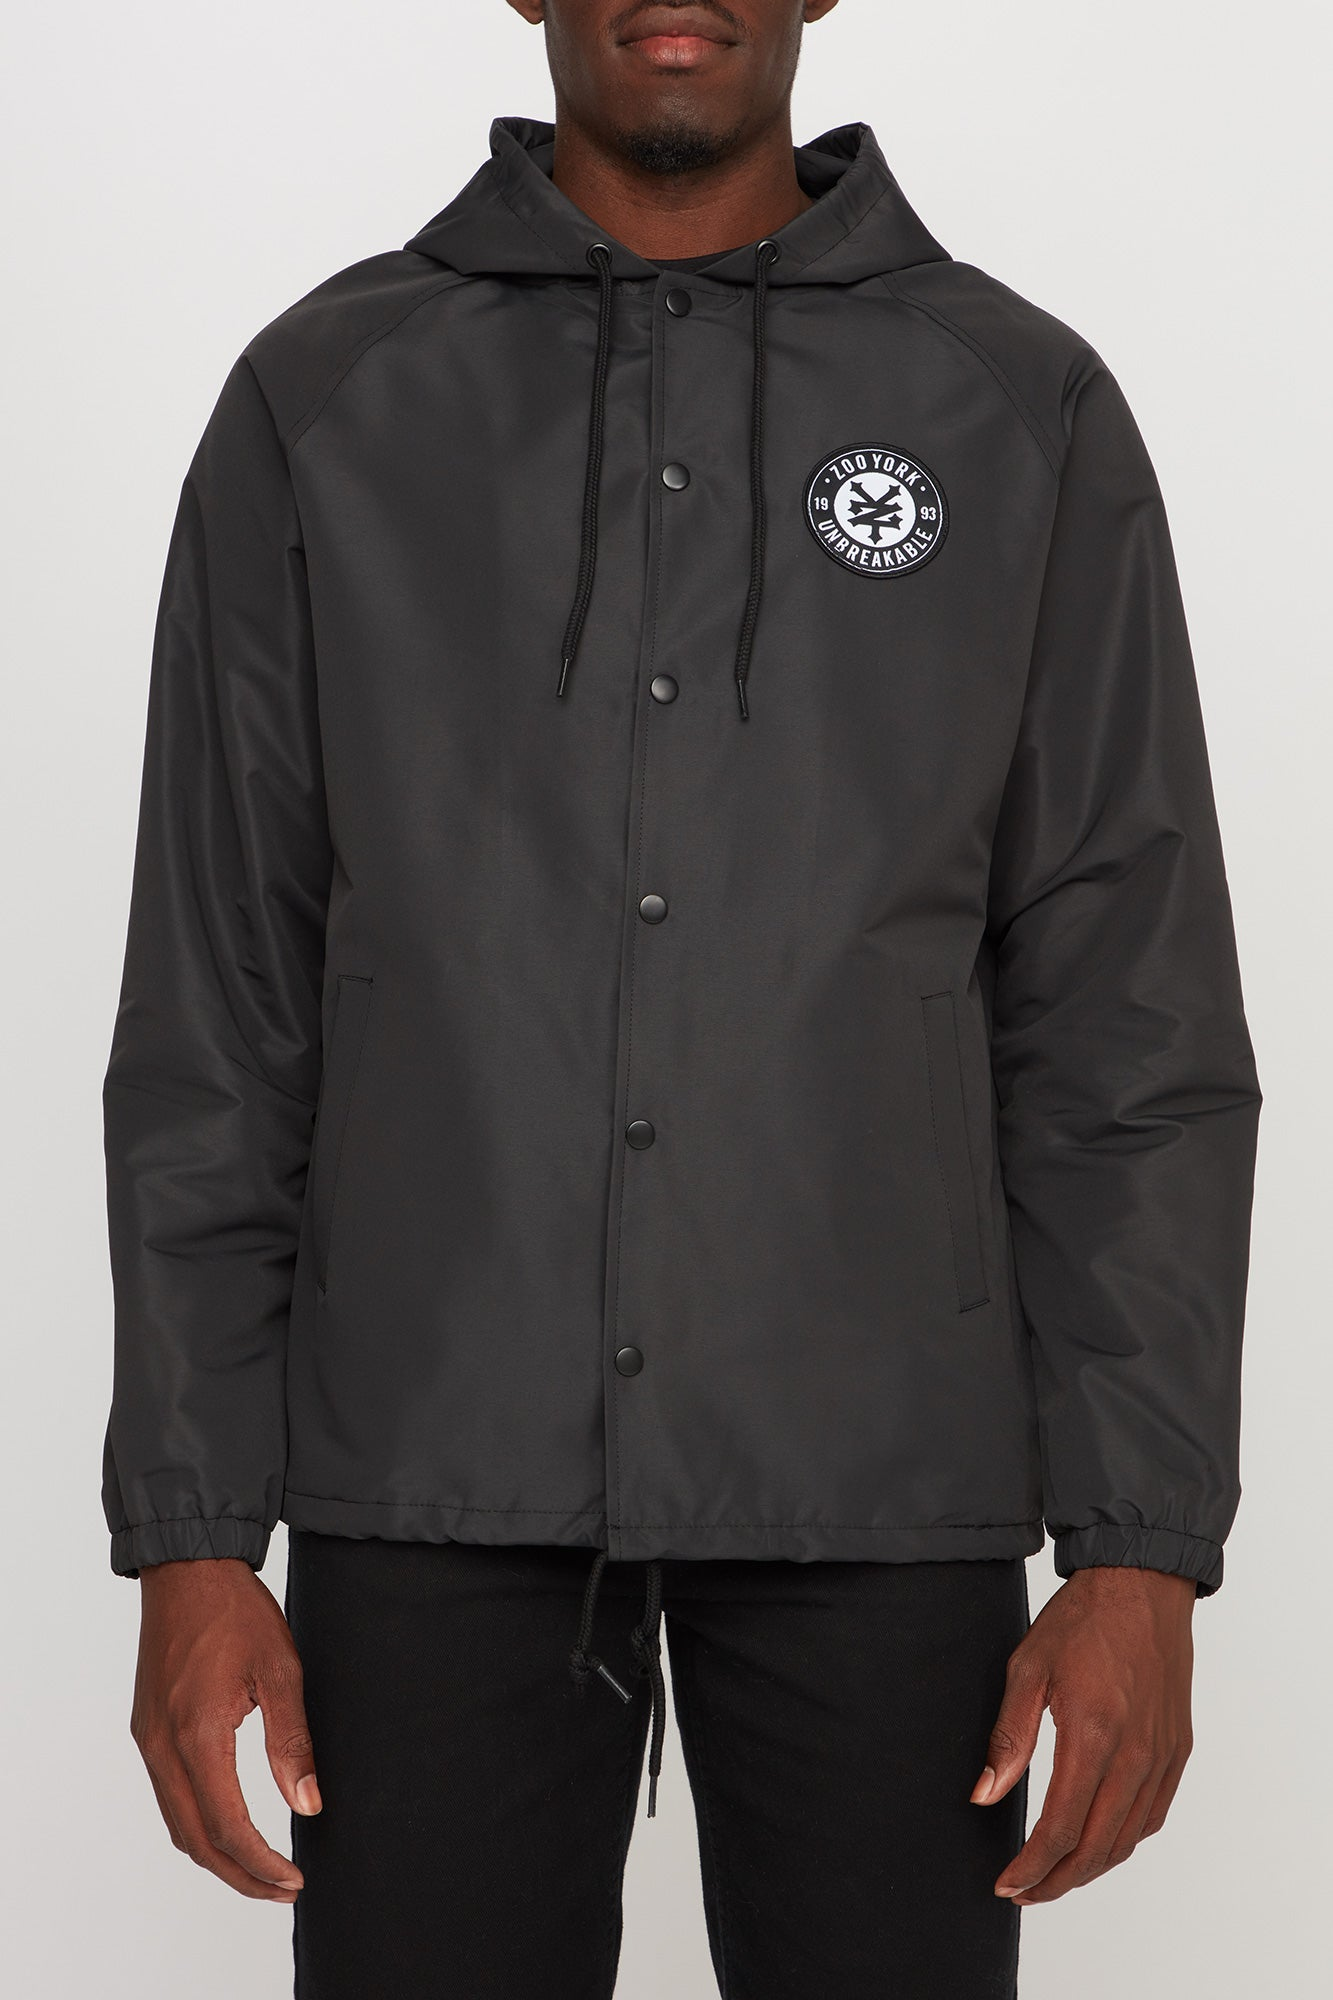 Zoo York Men's Hooded Coaches Jacket